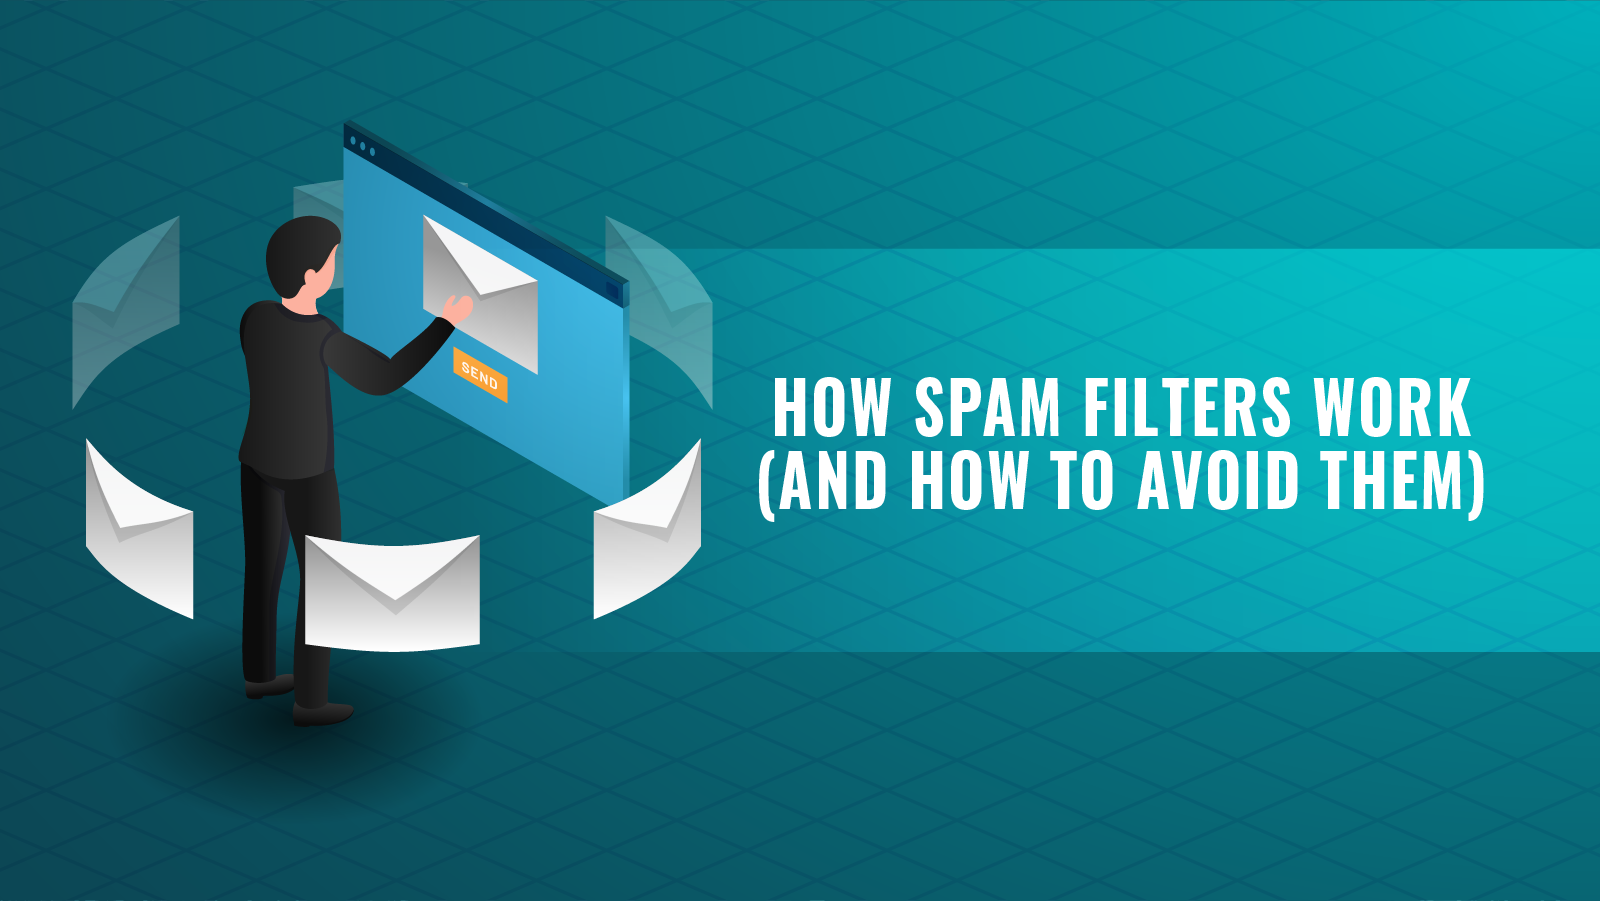 How spam filters work